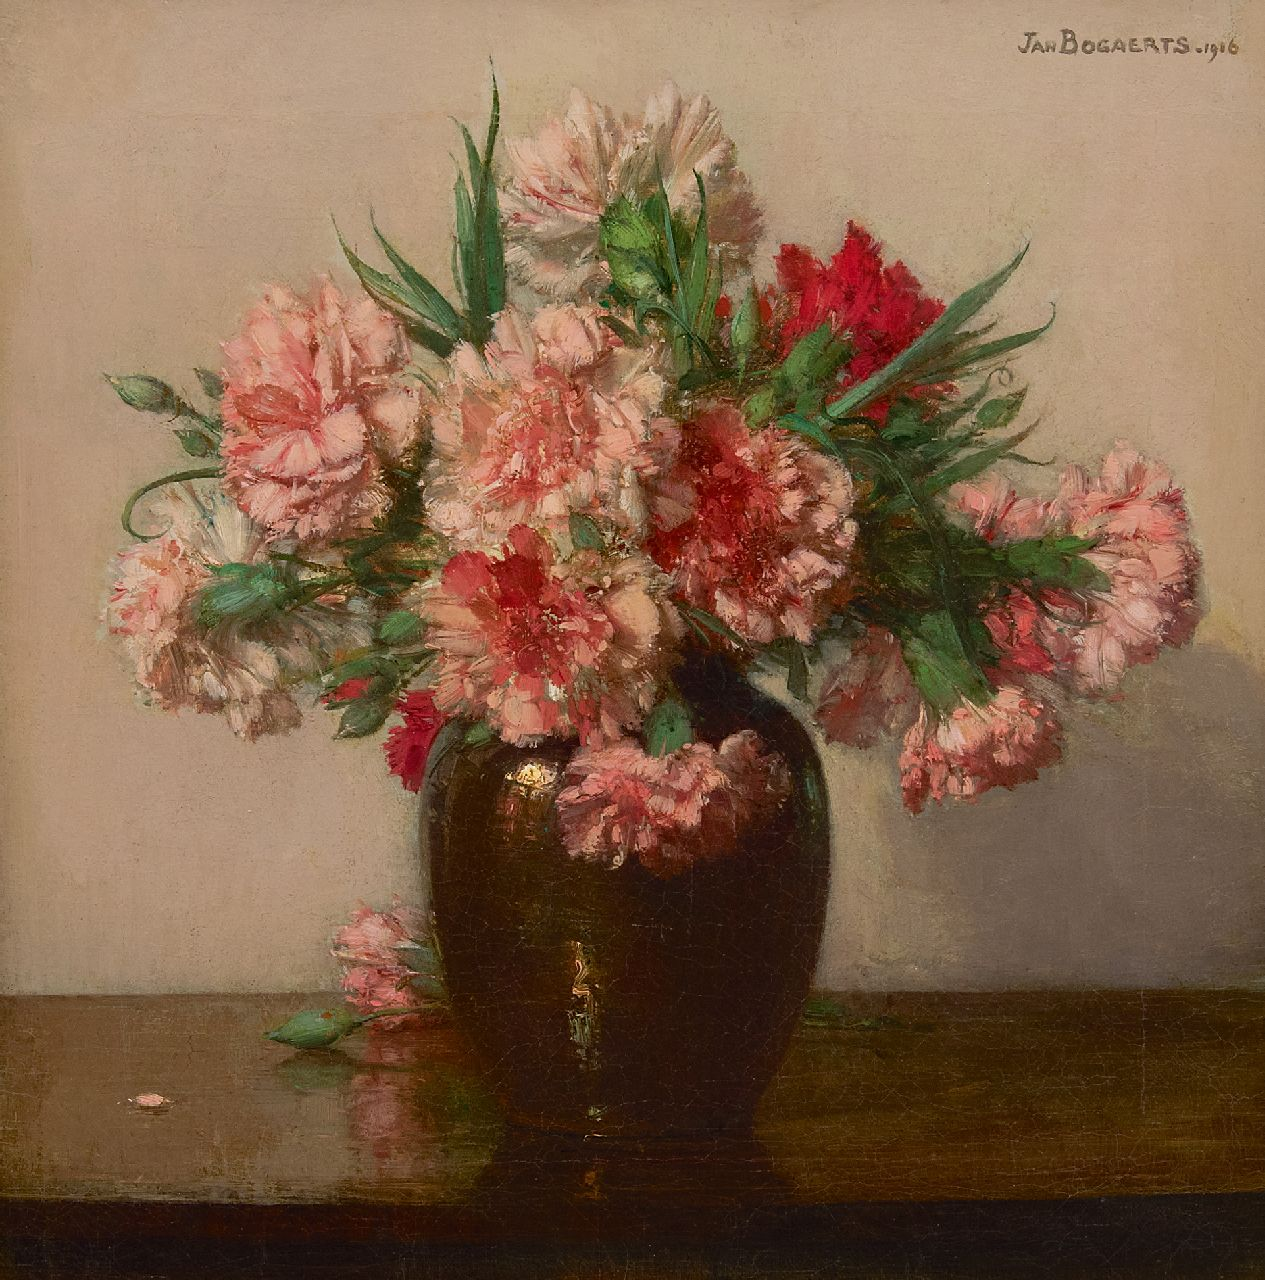 Bogaerts J.J.M.  | Johannes Jacobus Maria 'Jan' Bogaerts | Paintings offered for sale | Pink carnations, oil on canvas 39.6 x 38.5 cm, signed u.r. and dated 1916